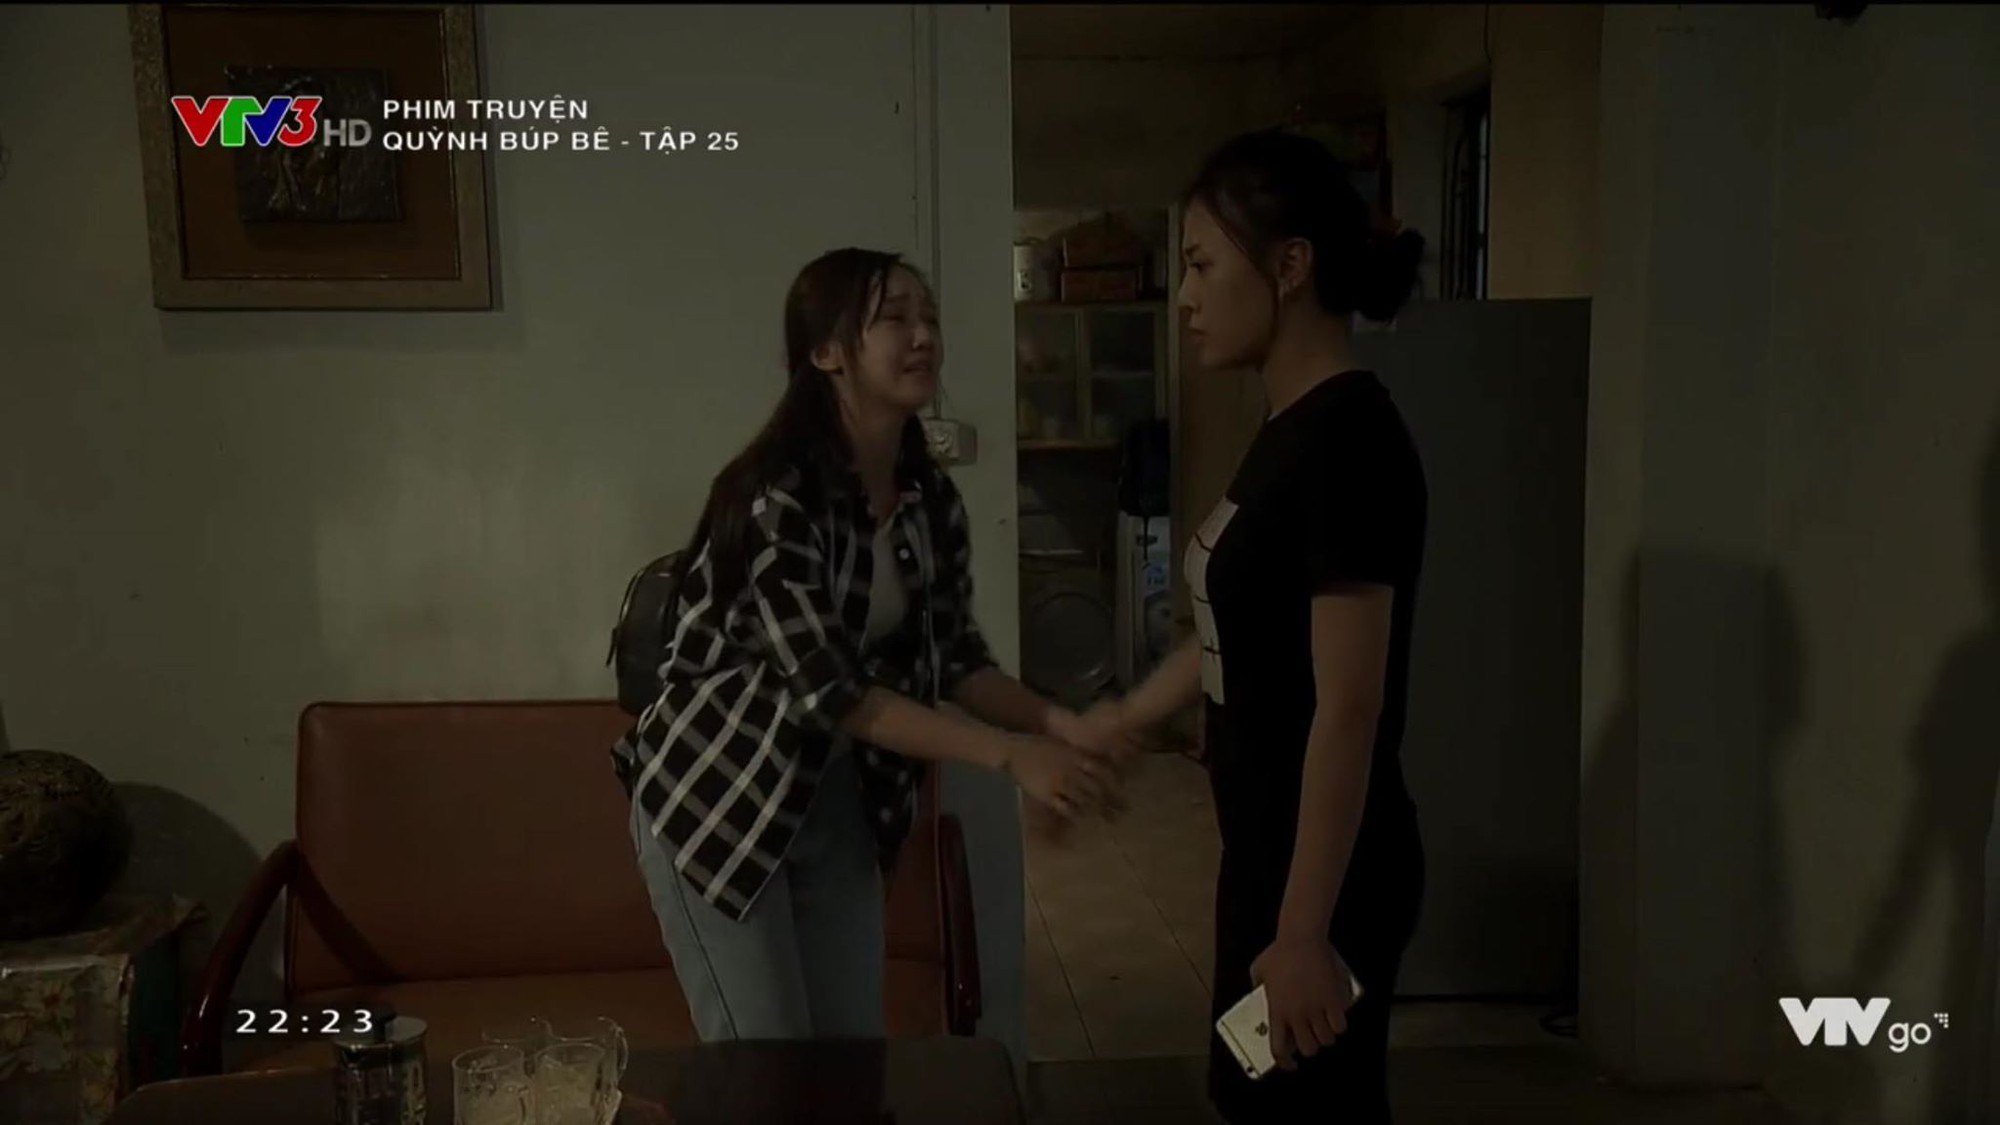 Oanh and Quynh Kool invite each other in the 25th episode of Quynh Bup Bac - Picture 6.